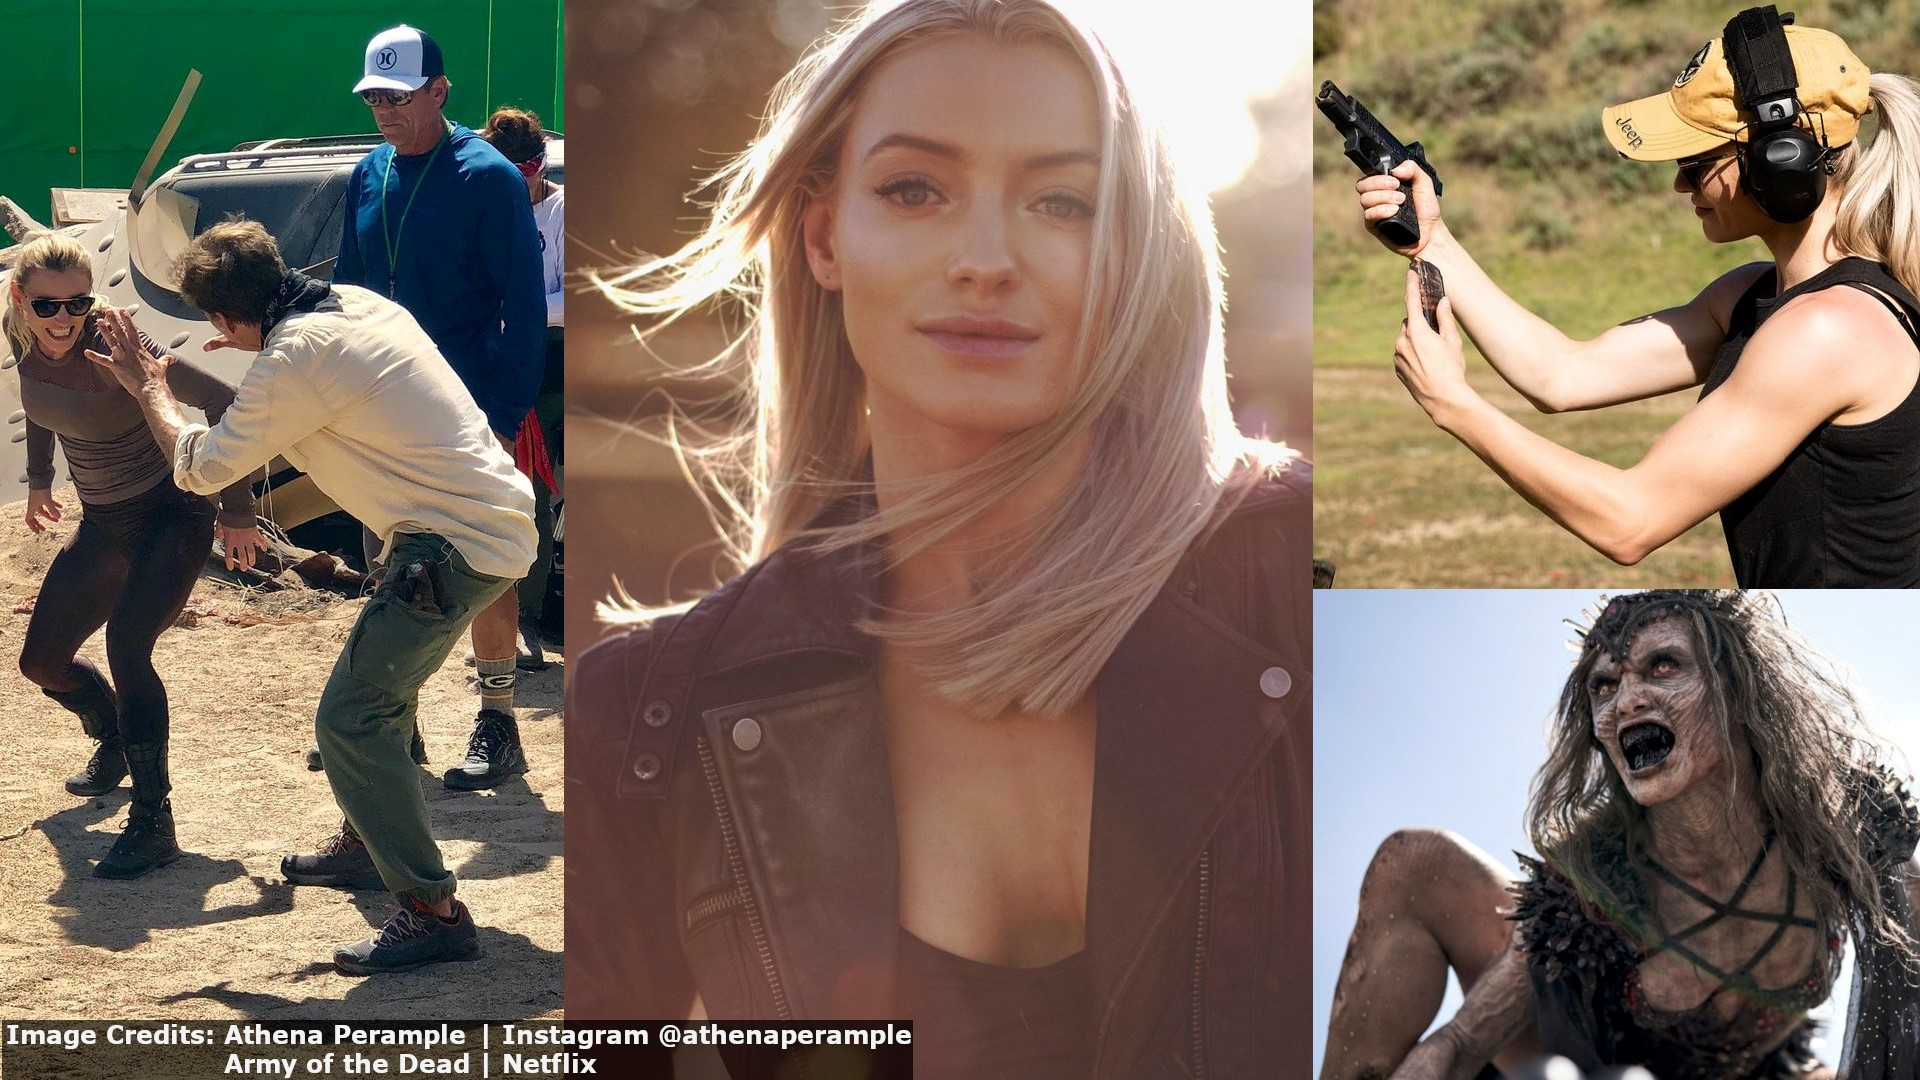 Athena Perample - Professional Stuntwomen Actress Beautiful Woman Hot Girl. Alpha Zombie Queen in Zack Snyder's Army of the Dead